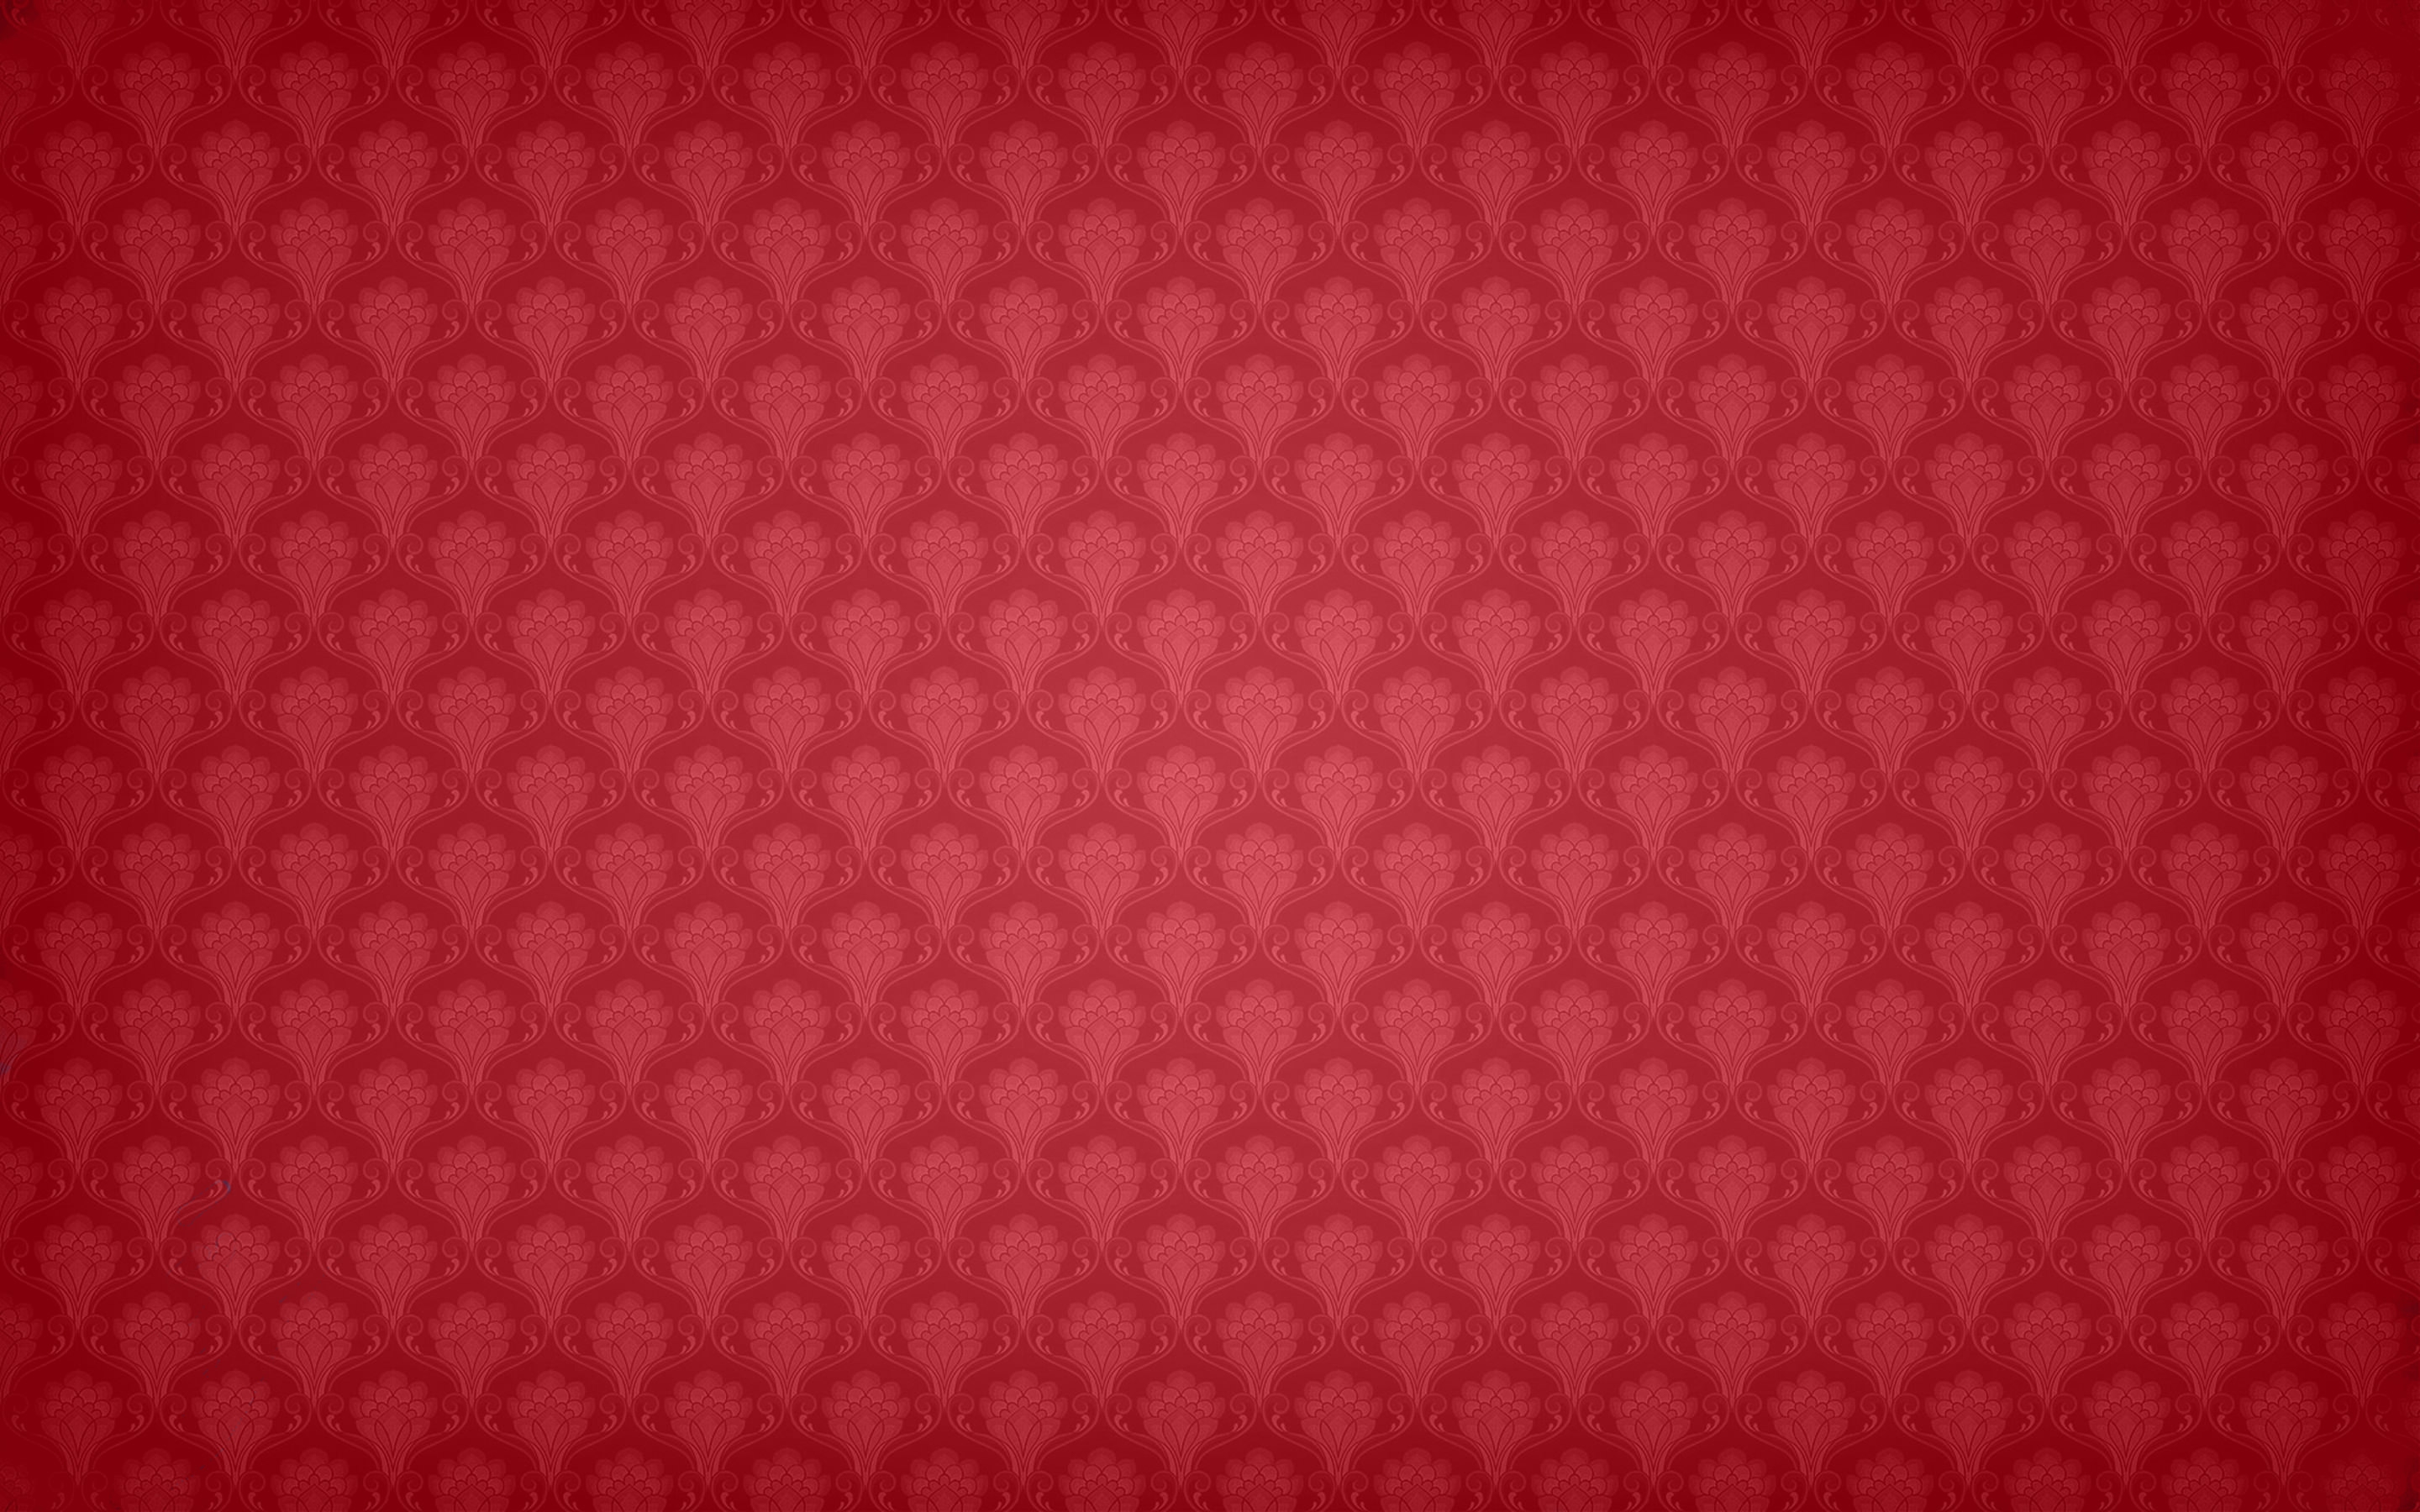 Crimson Red Floral Background Wallpaper